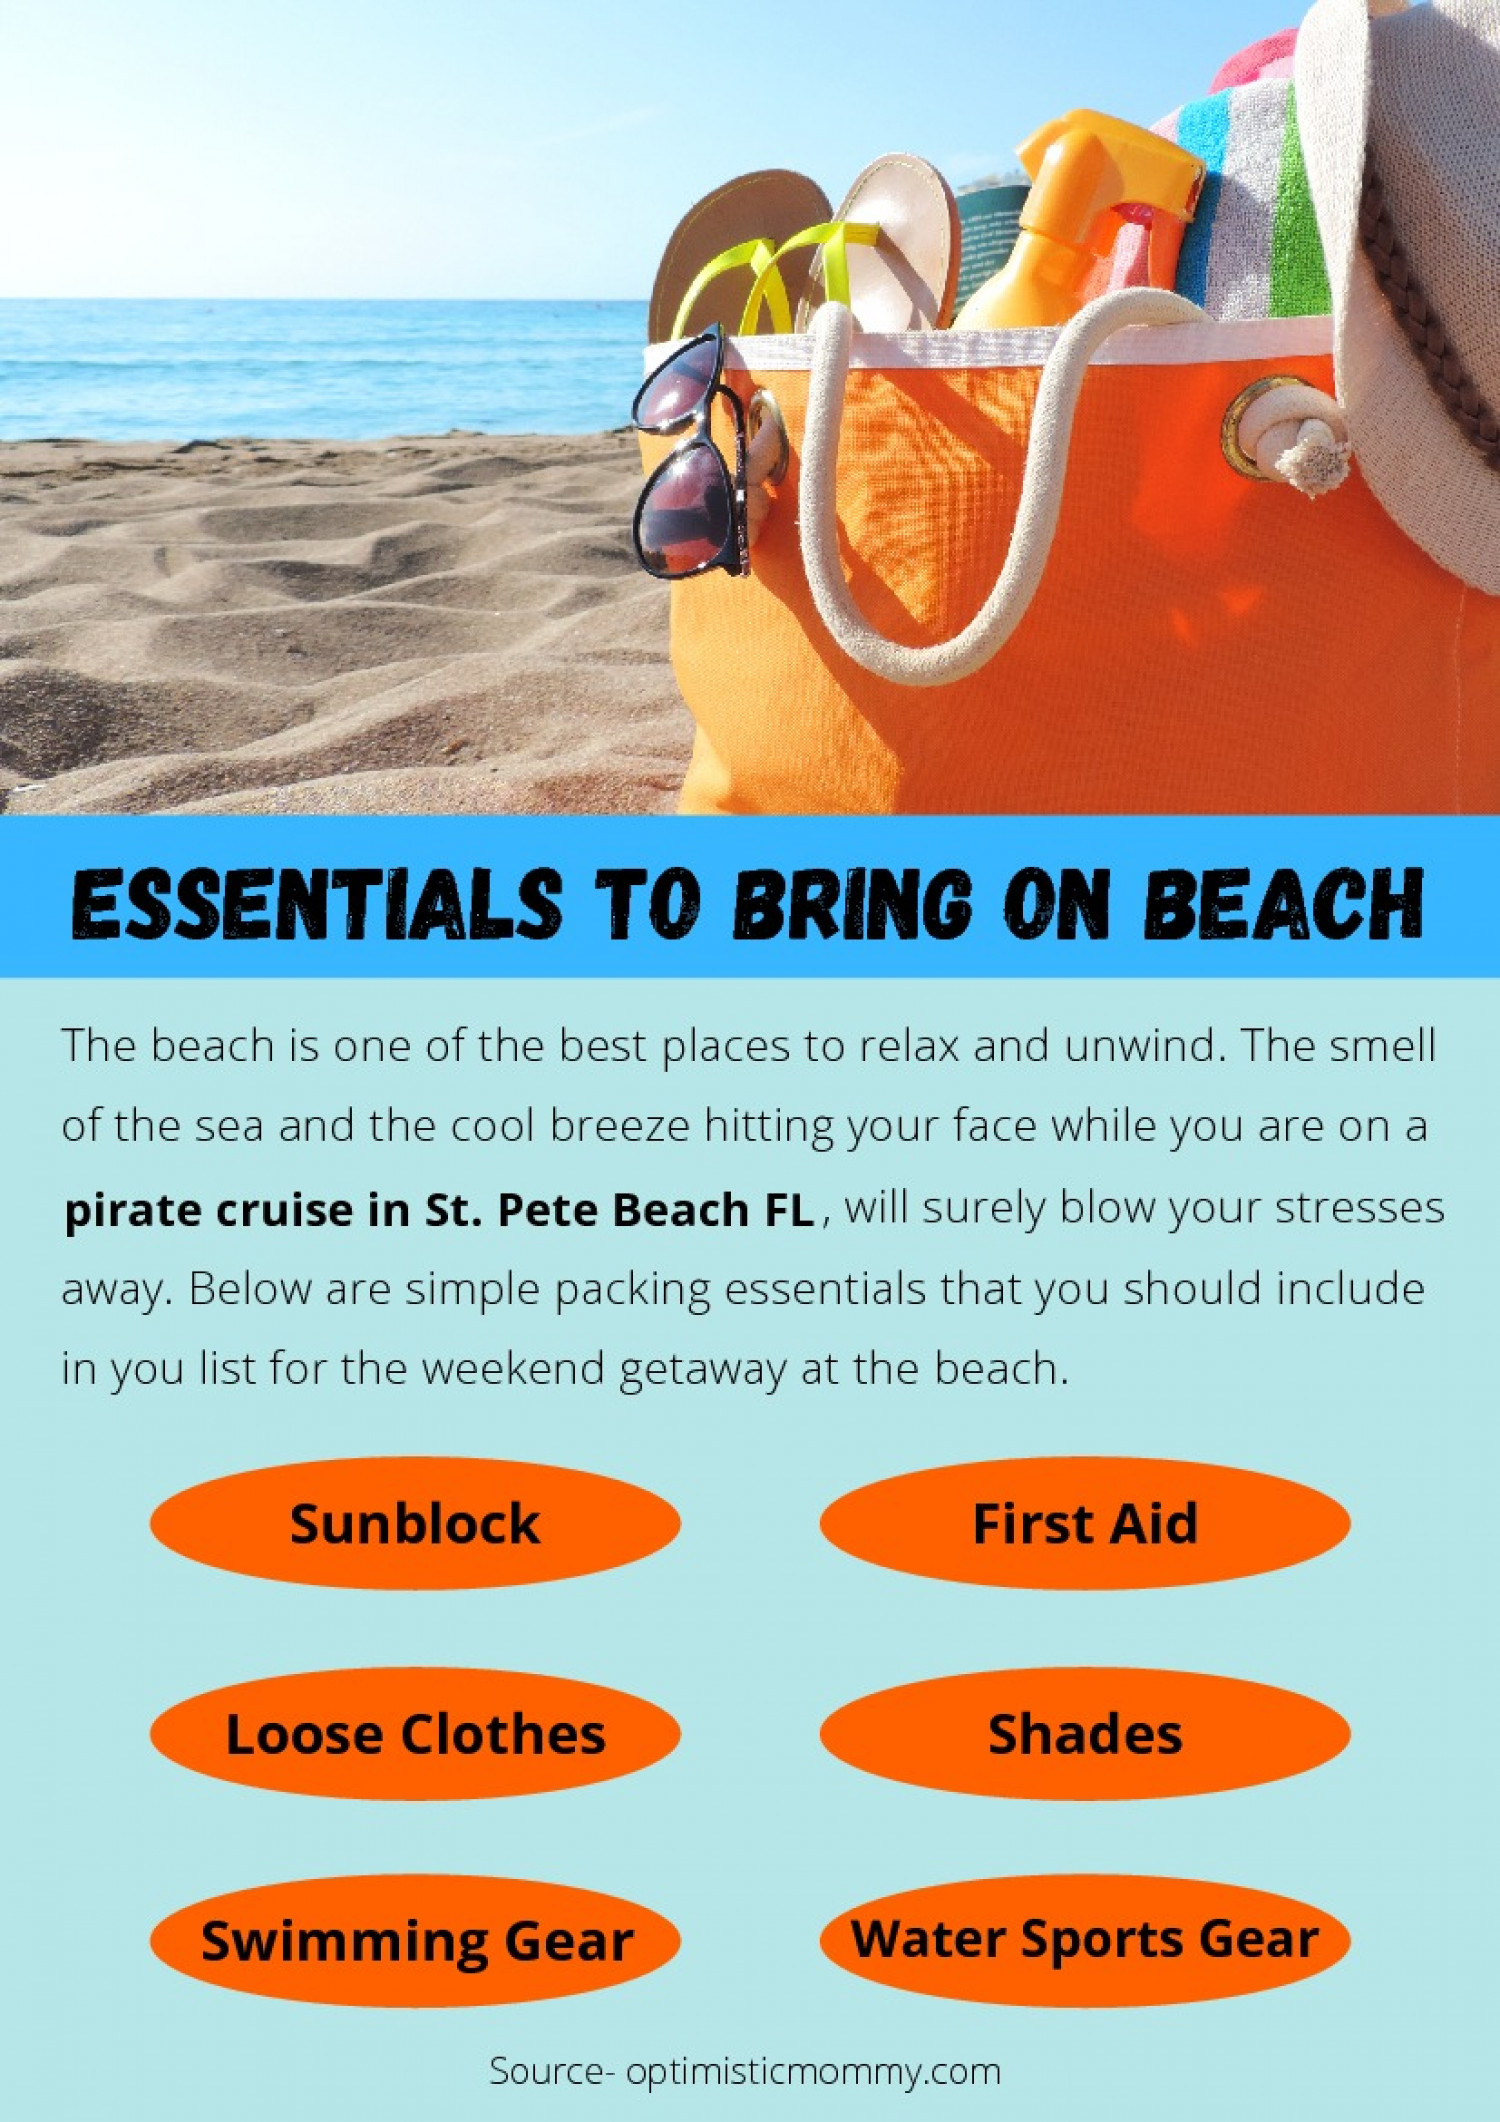 ESSENTIALS TO BRING ON BEACH Infographic